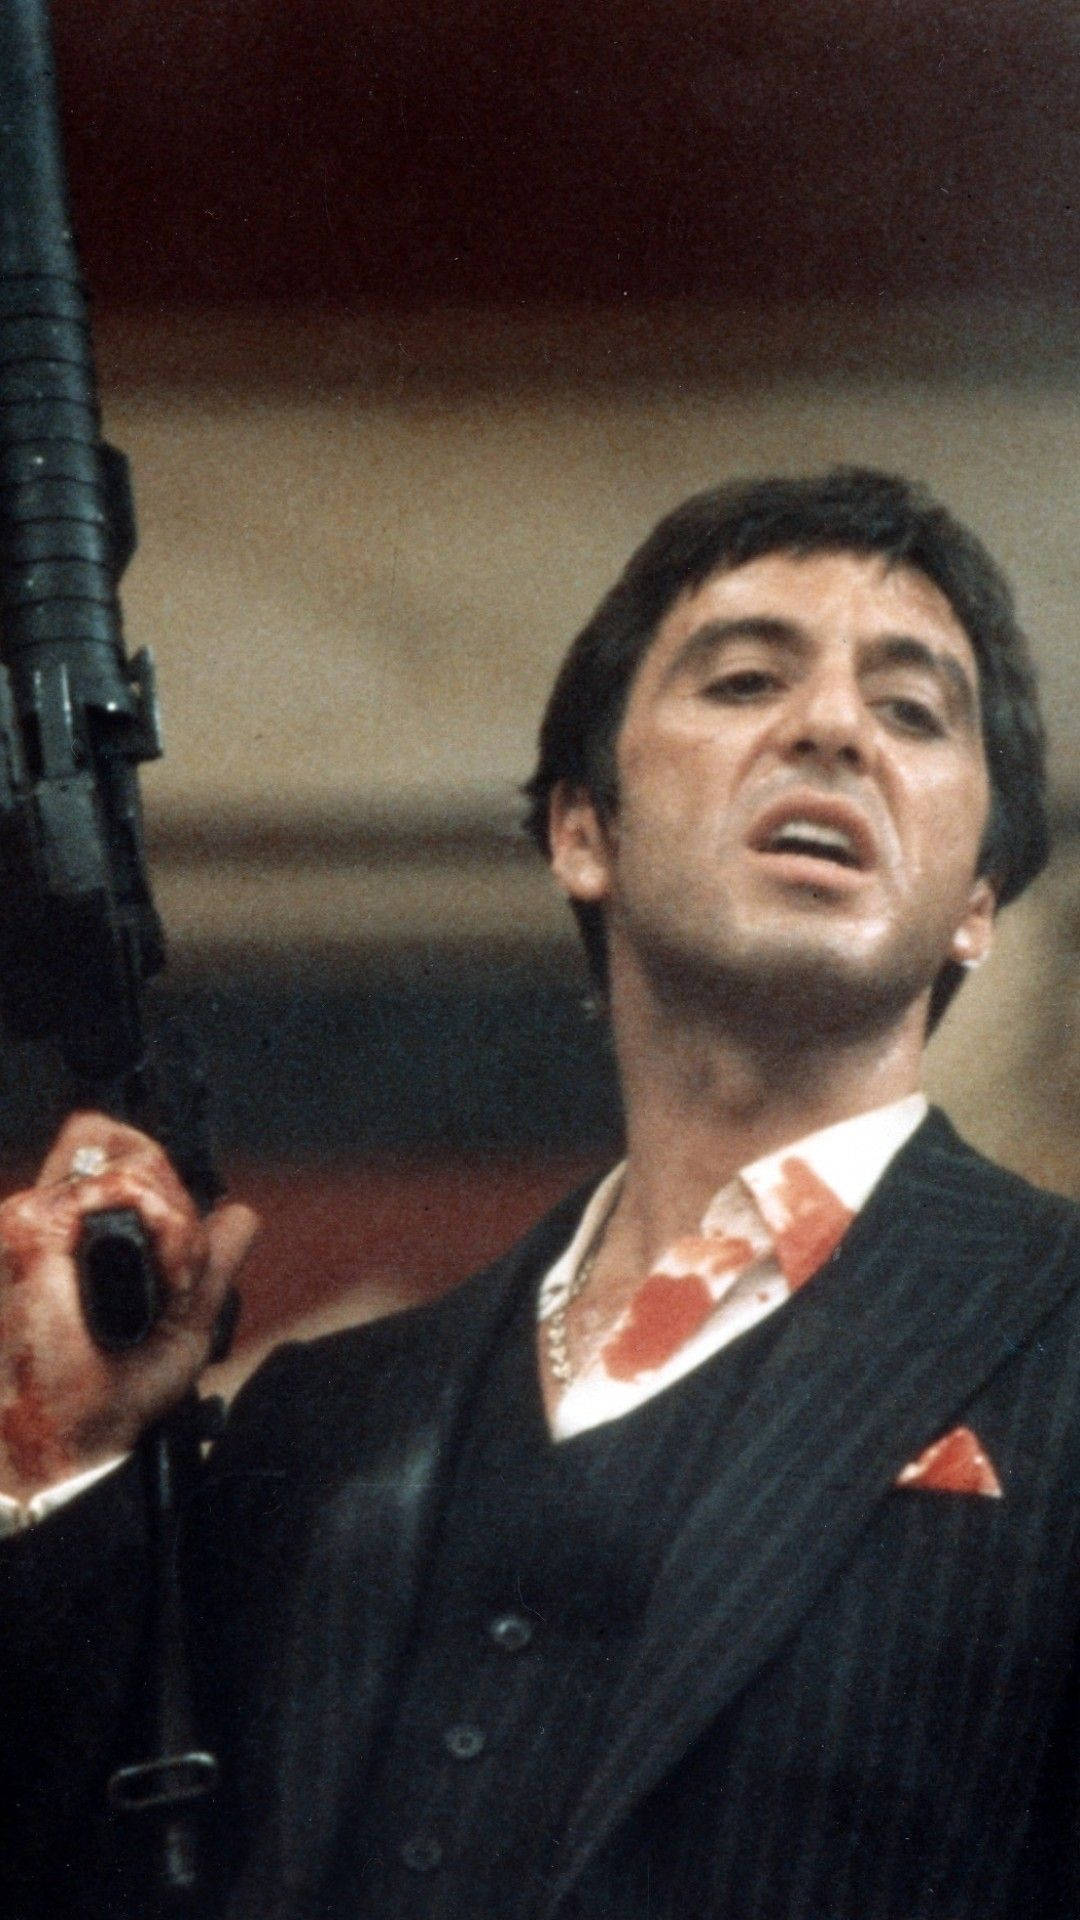 Scarface Wallpaper 70 Images Scarface Movie Scarface Gangster Movies